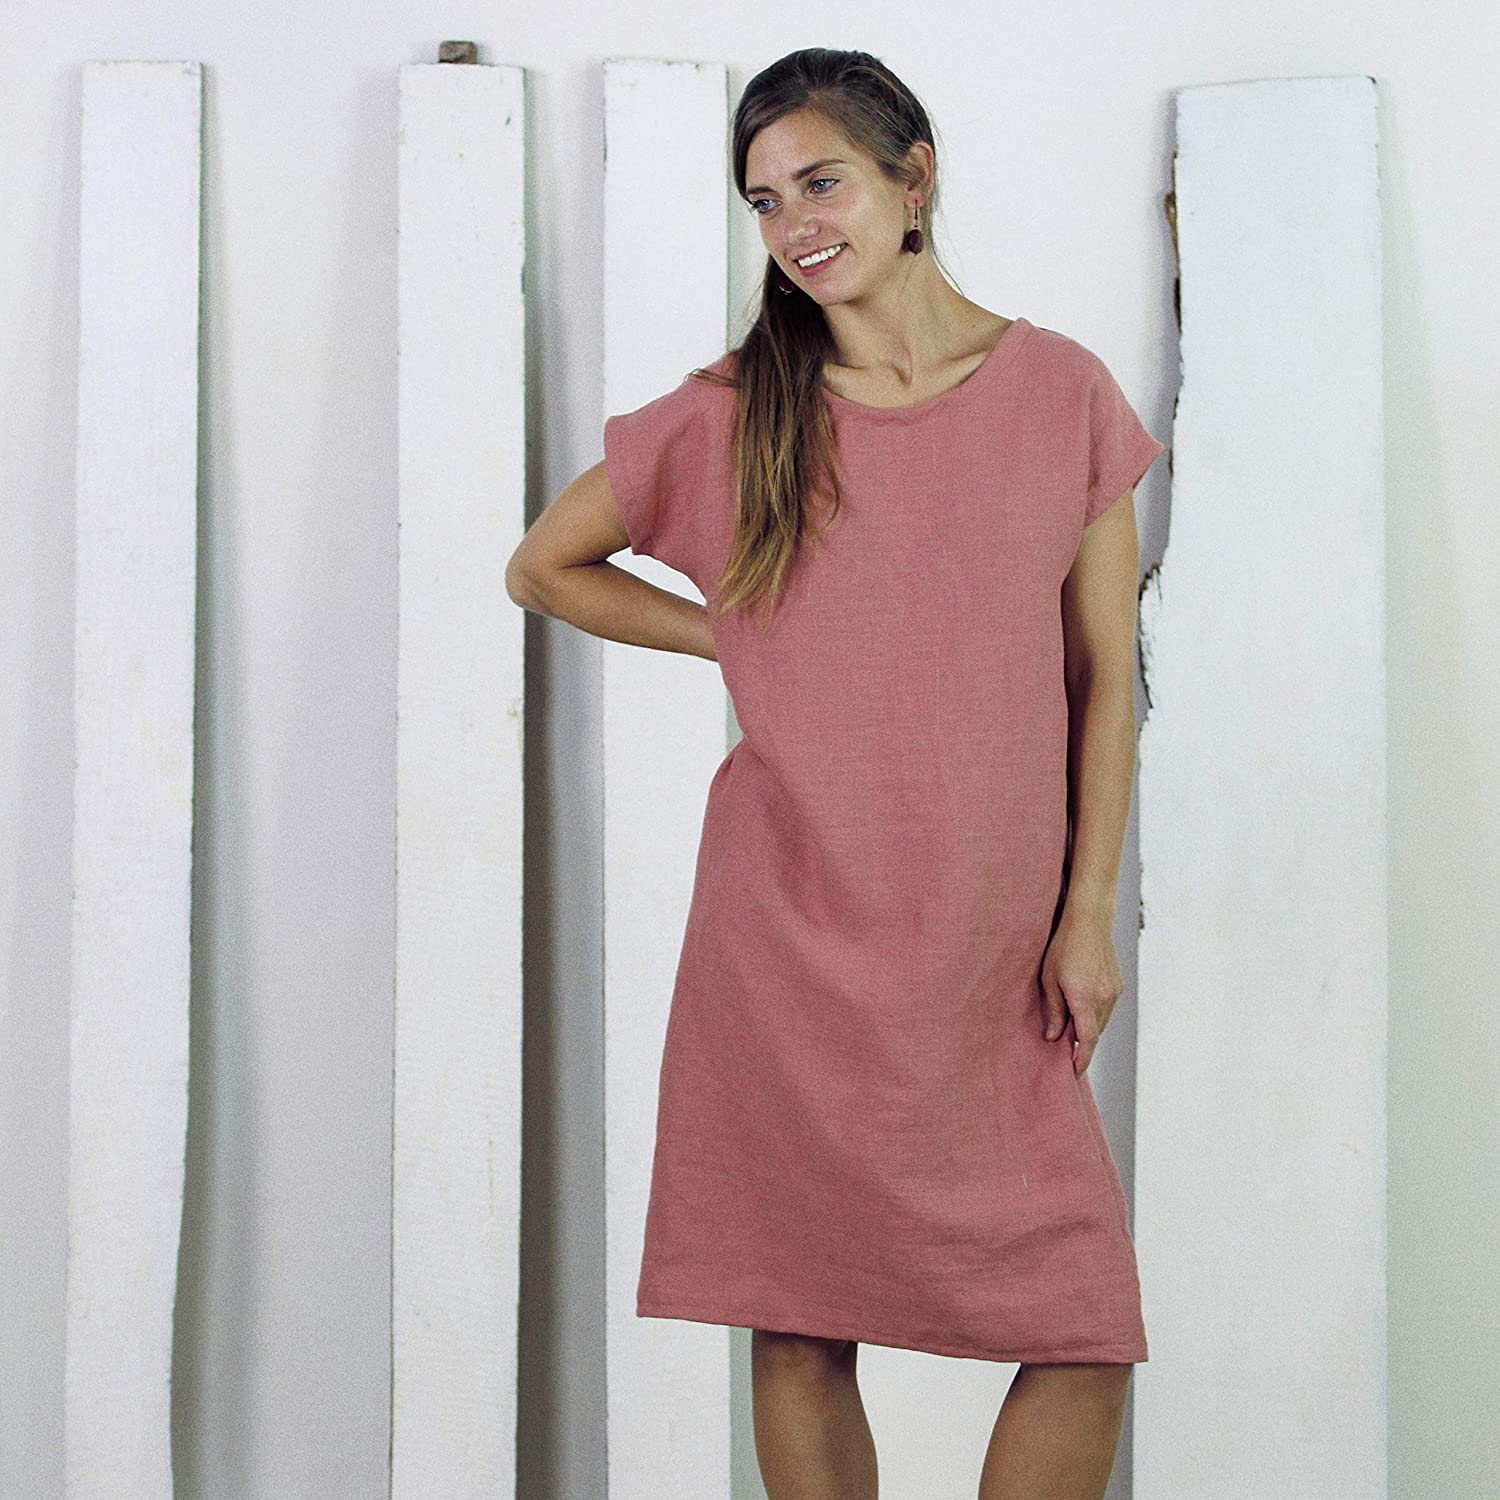 Casual linen tunic with pockets Maternity linen dress Loose linen dress Linen dress with belt Oversized linen tunic Linen dress oversized